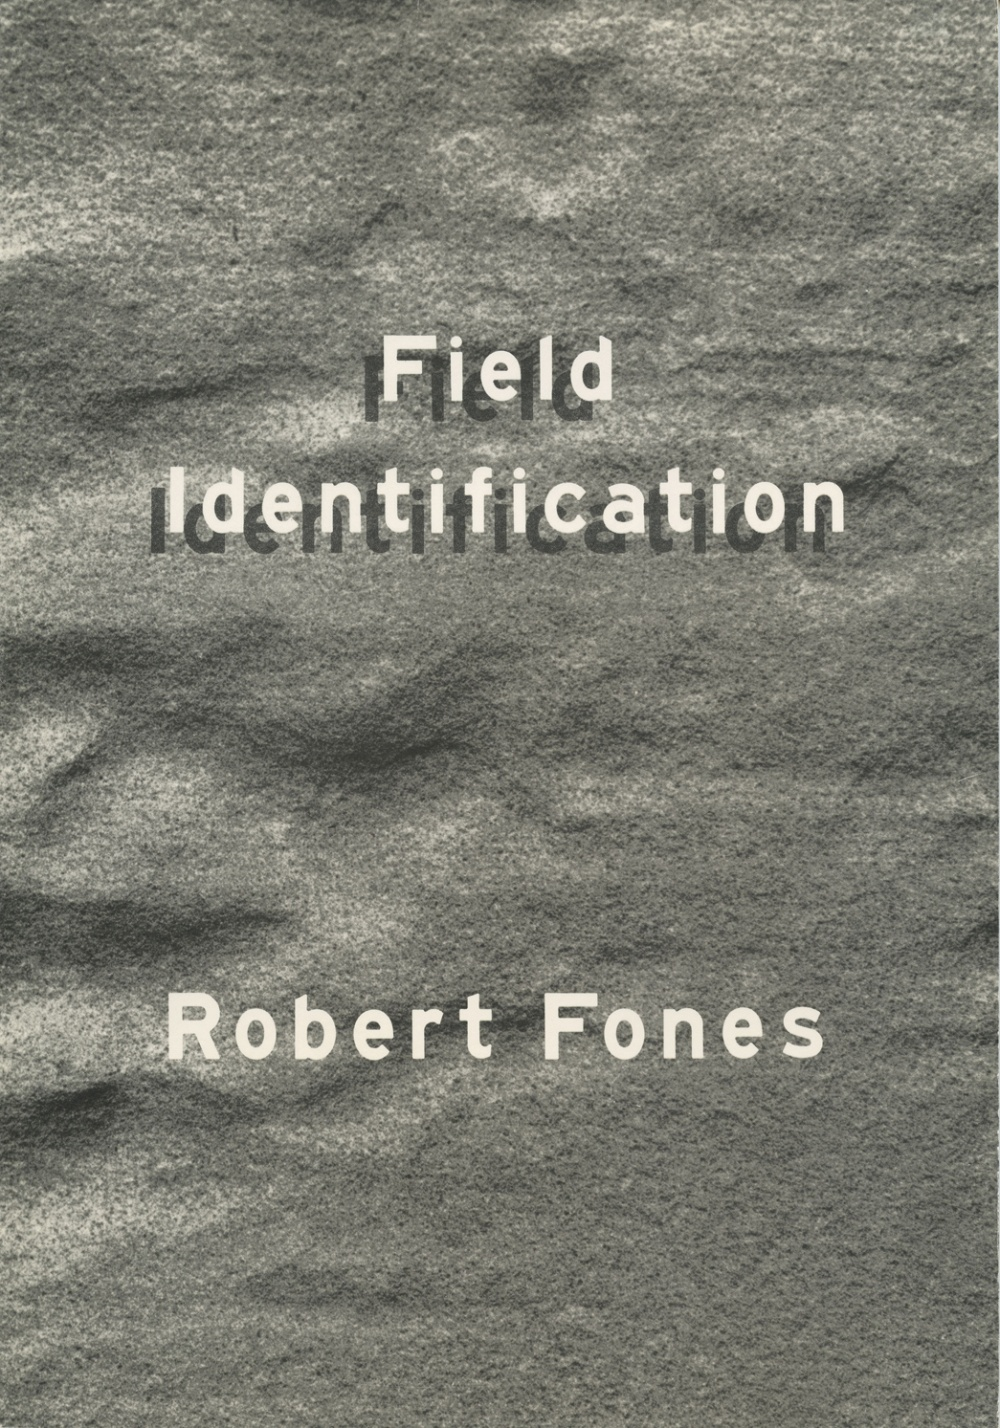 Field Identification